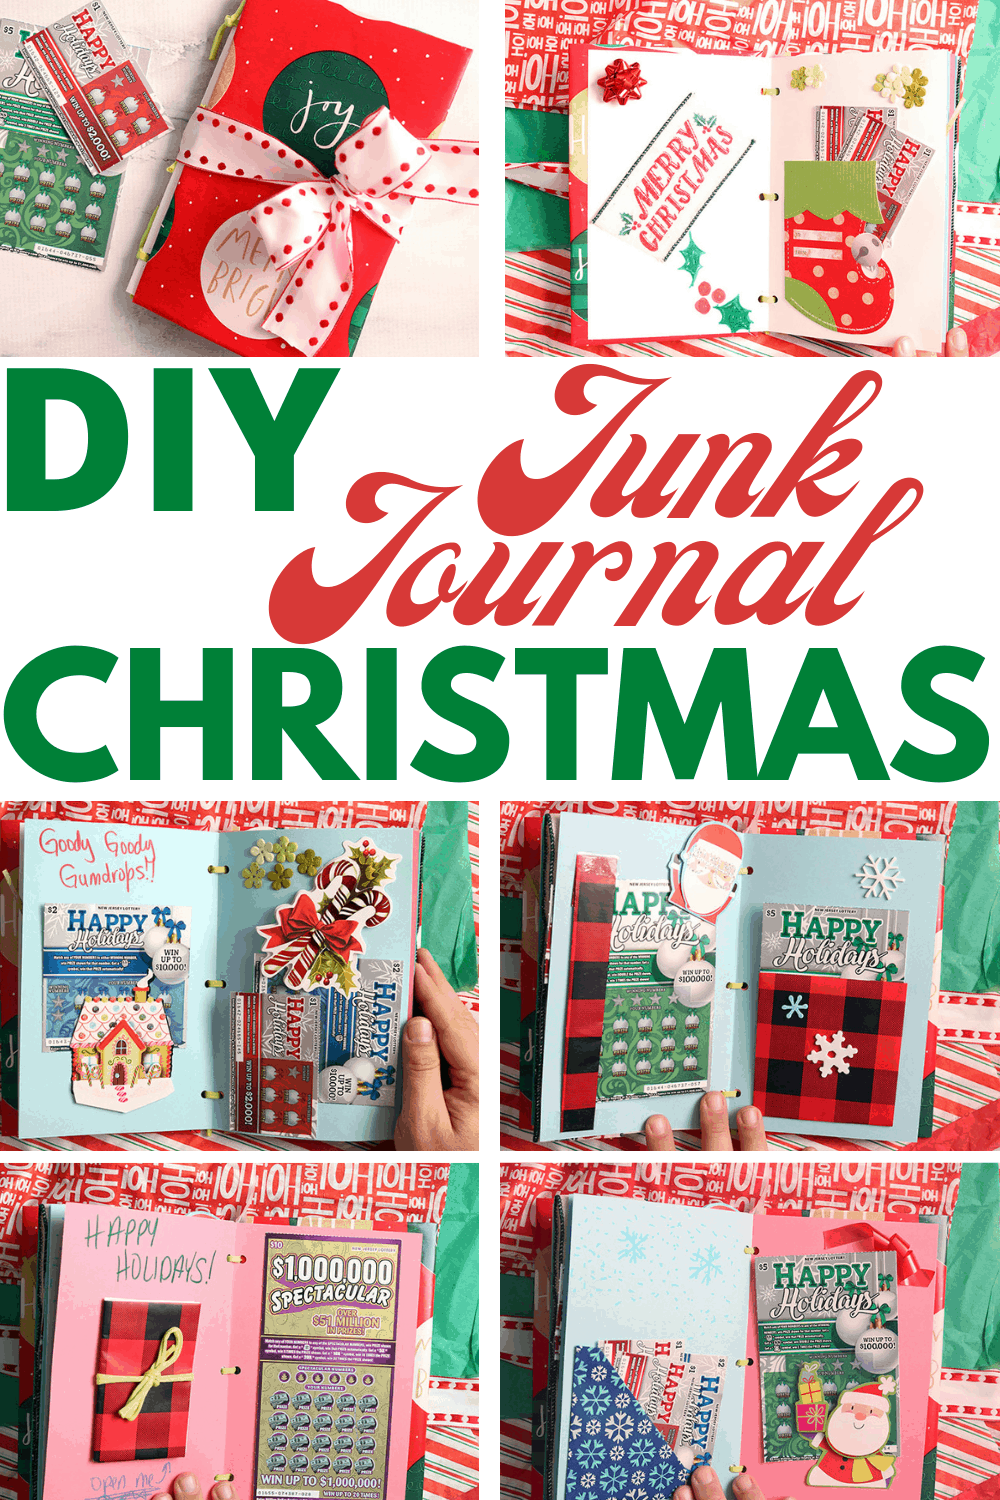 Christmas Junk Journal with NJ Lottery for Holidays